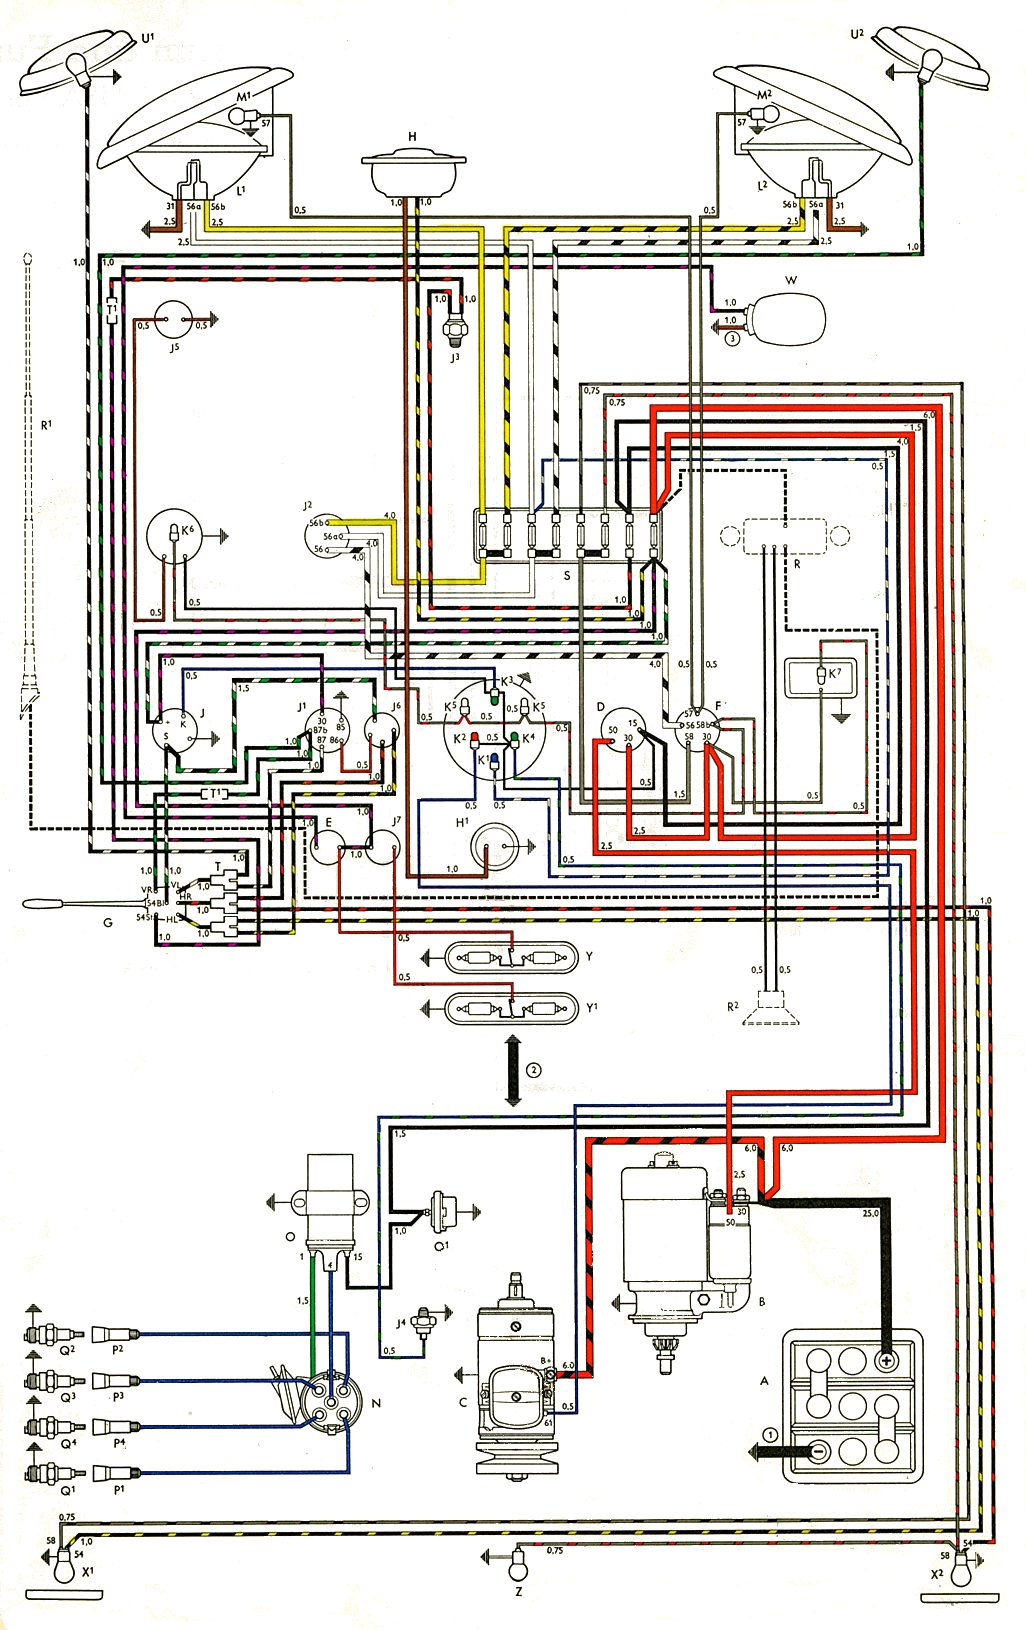 hight resolution of thesamba com type 2 wiring diagrams wiring diagram beetle compleat idiot